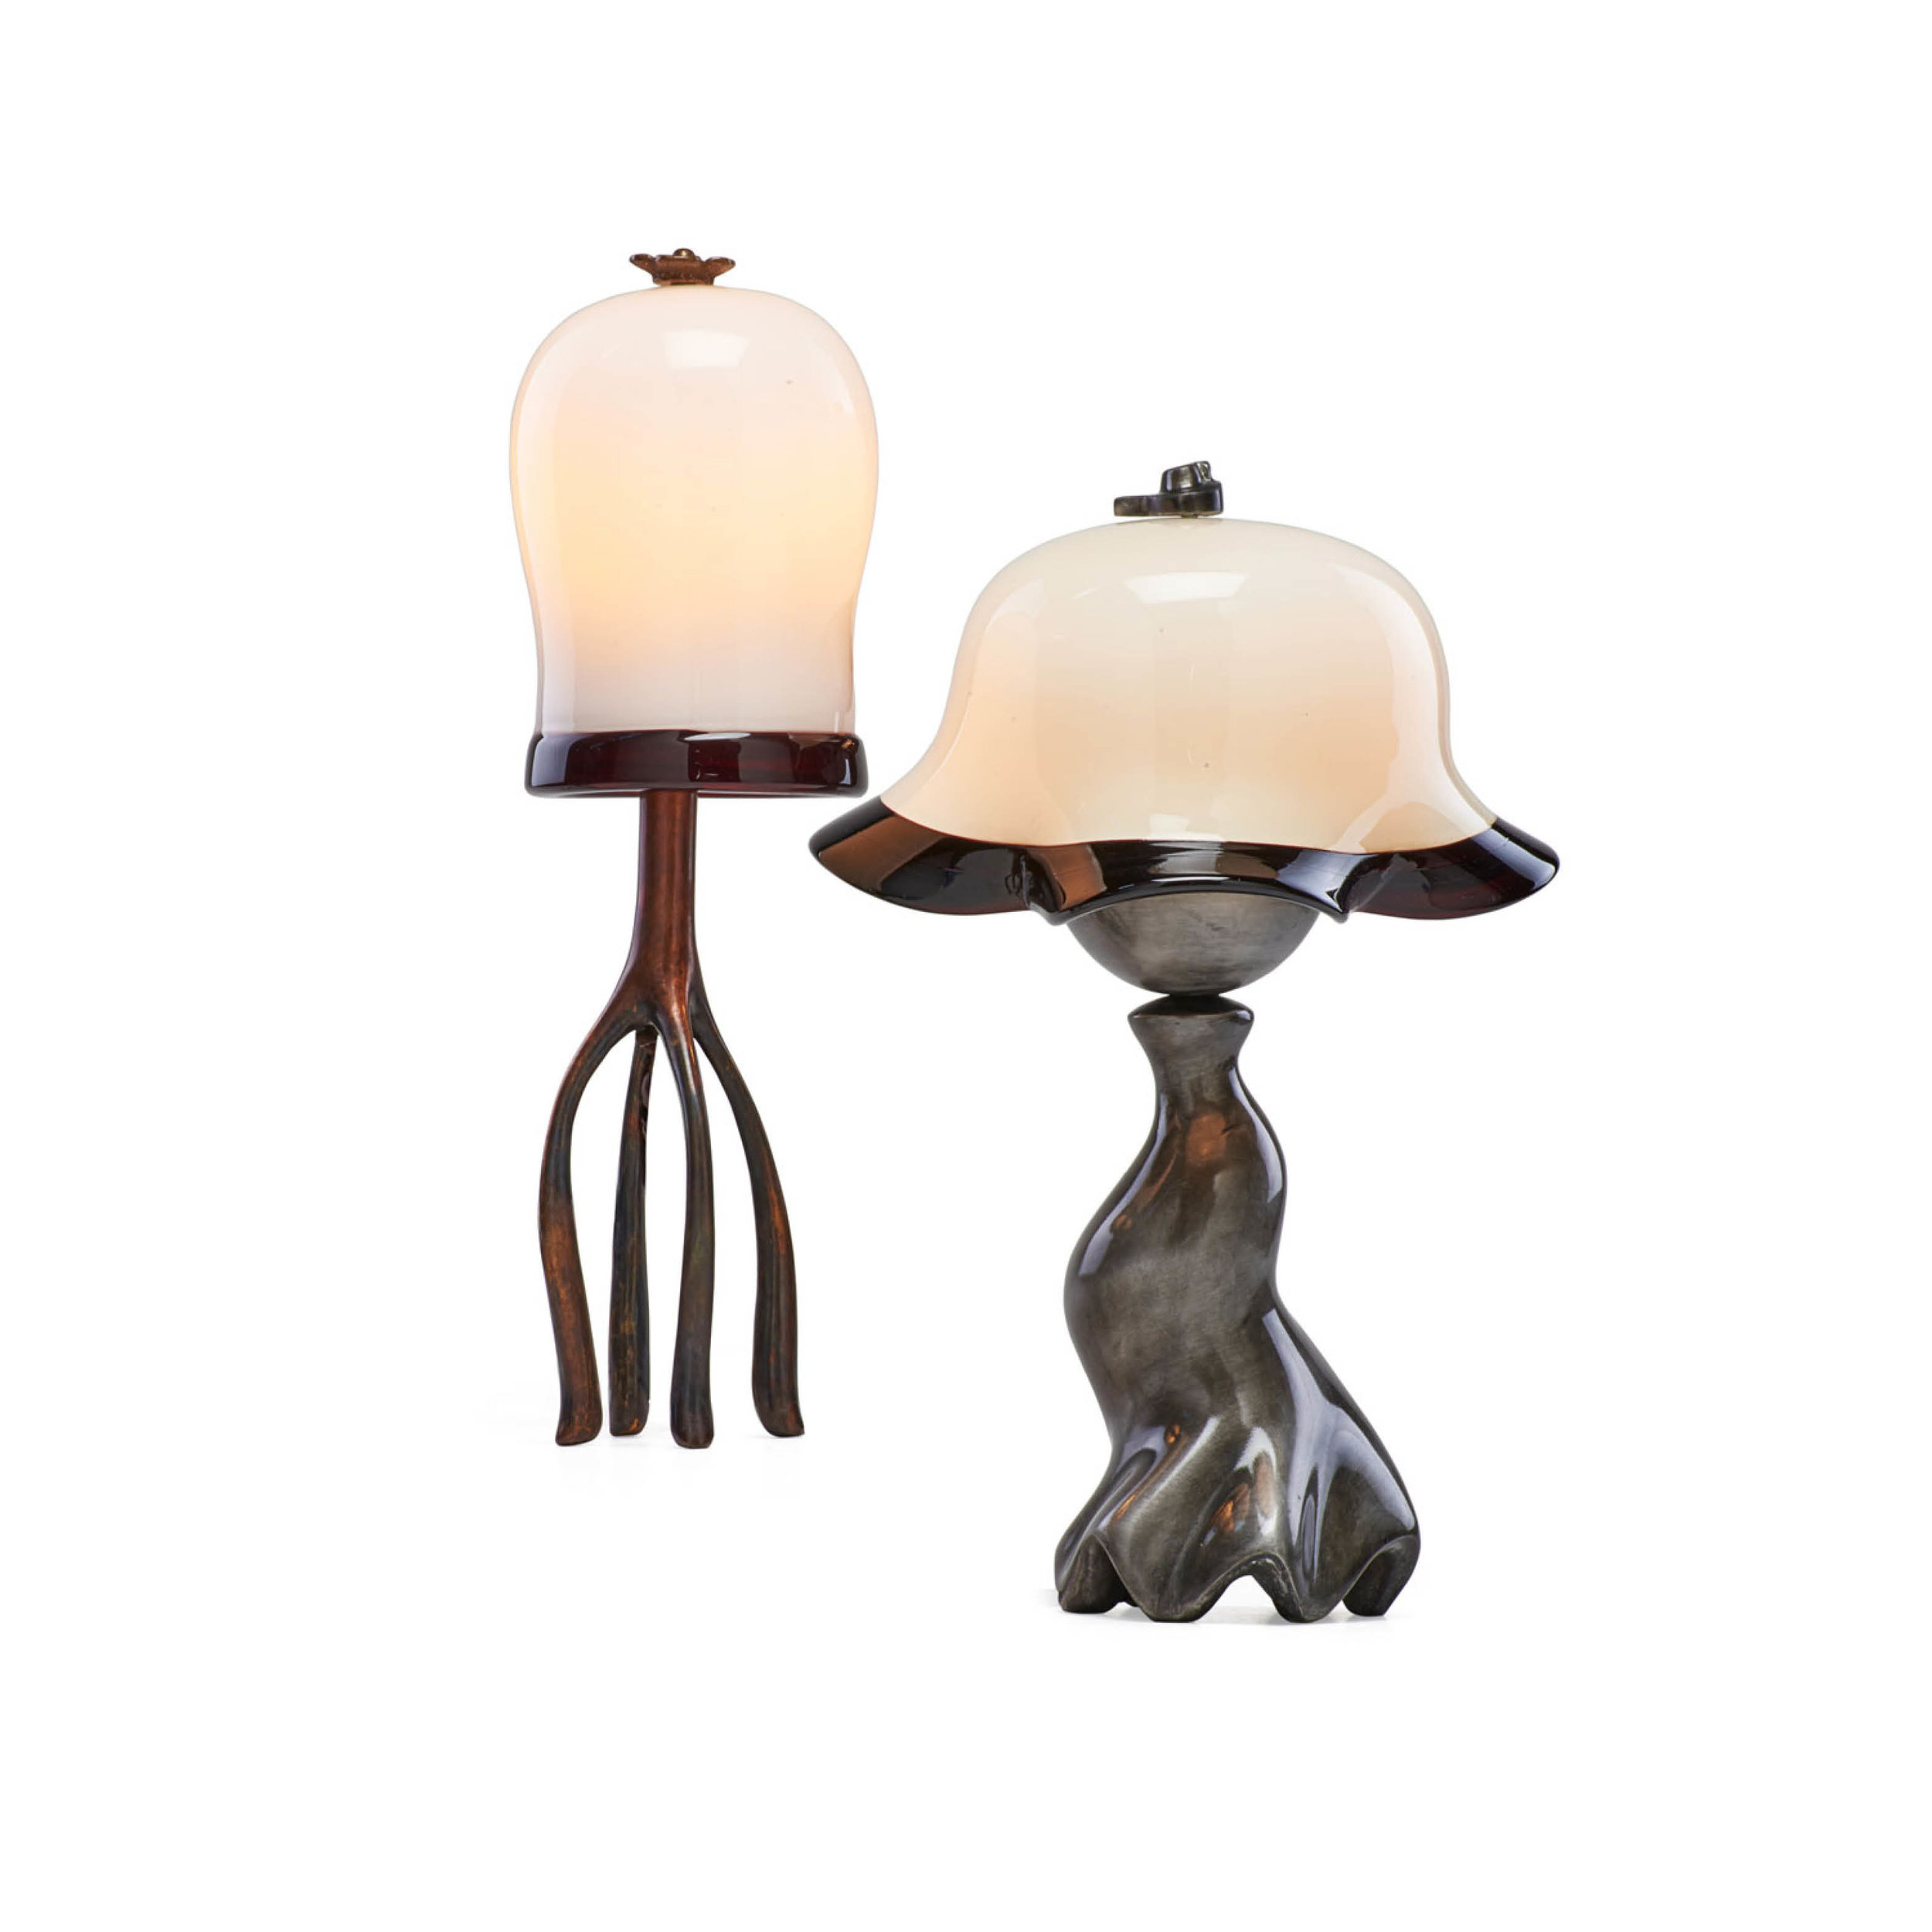 Swirl and H57 Lamps